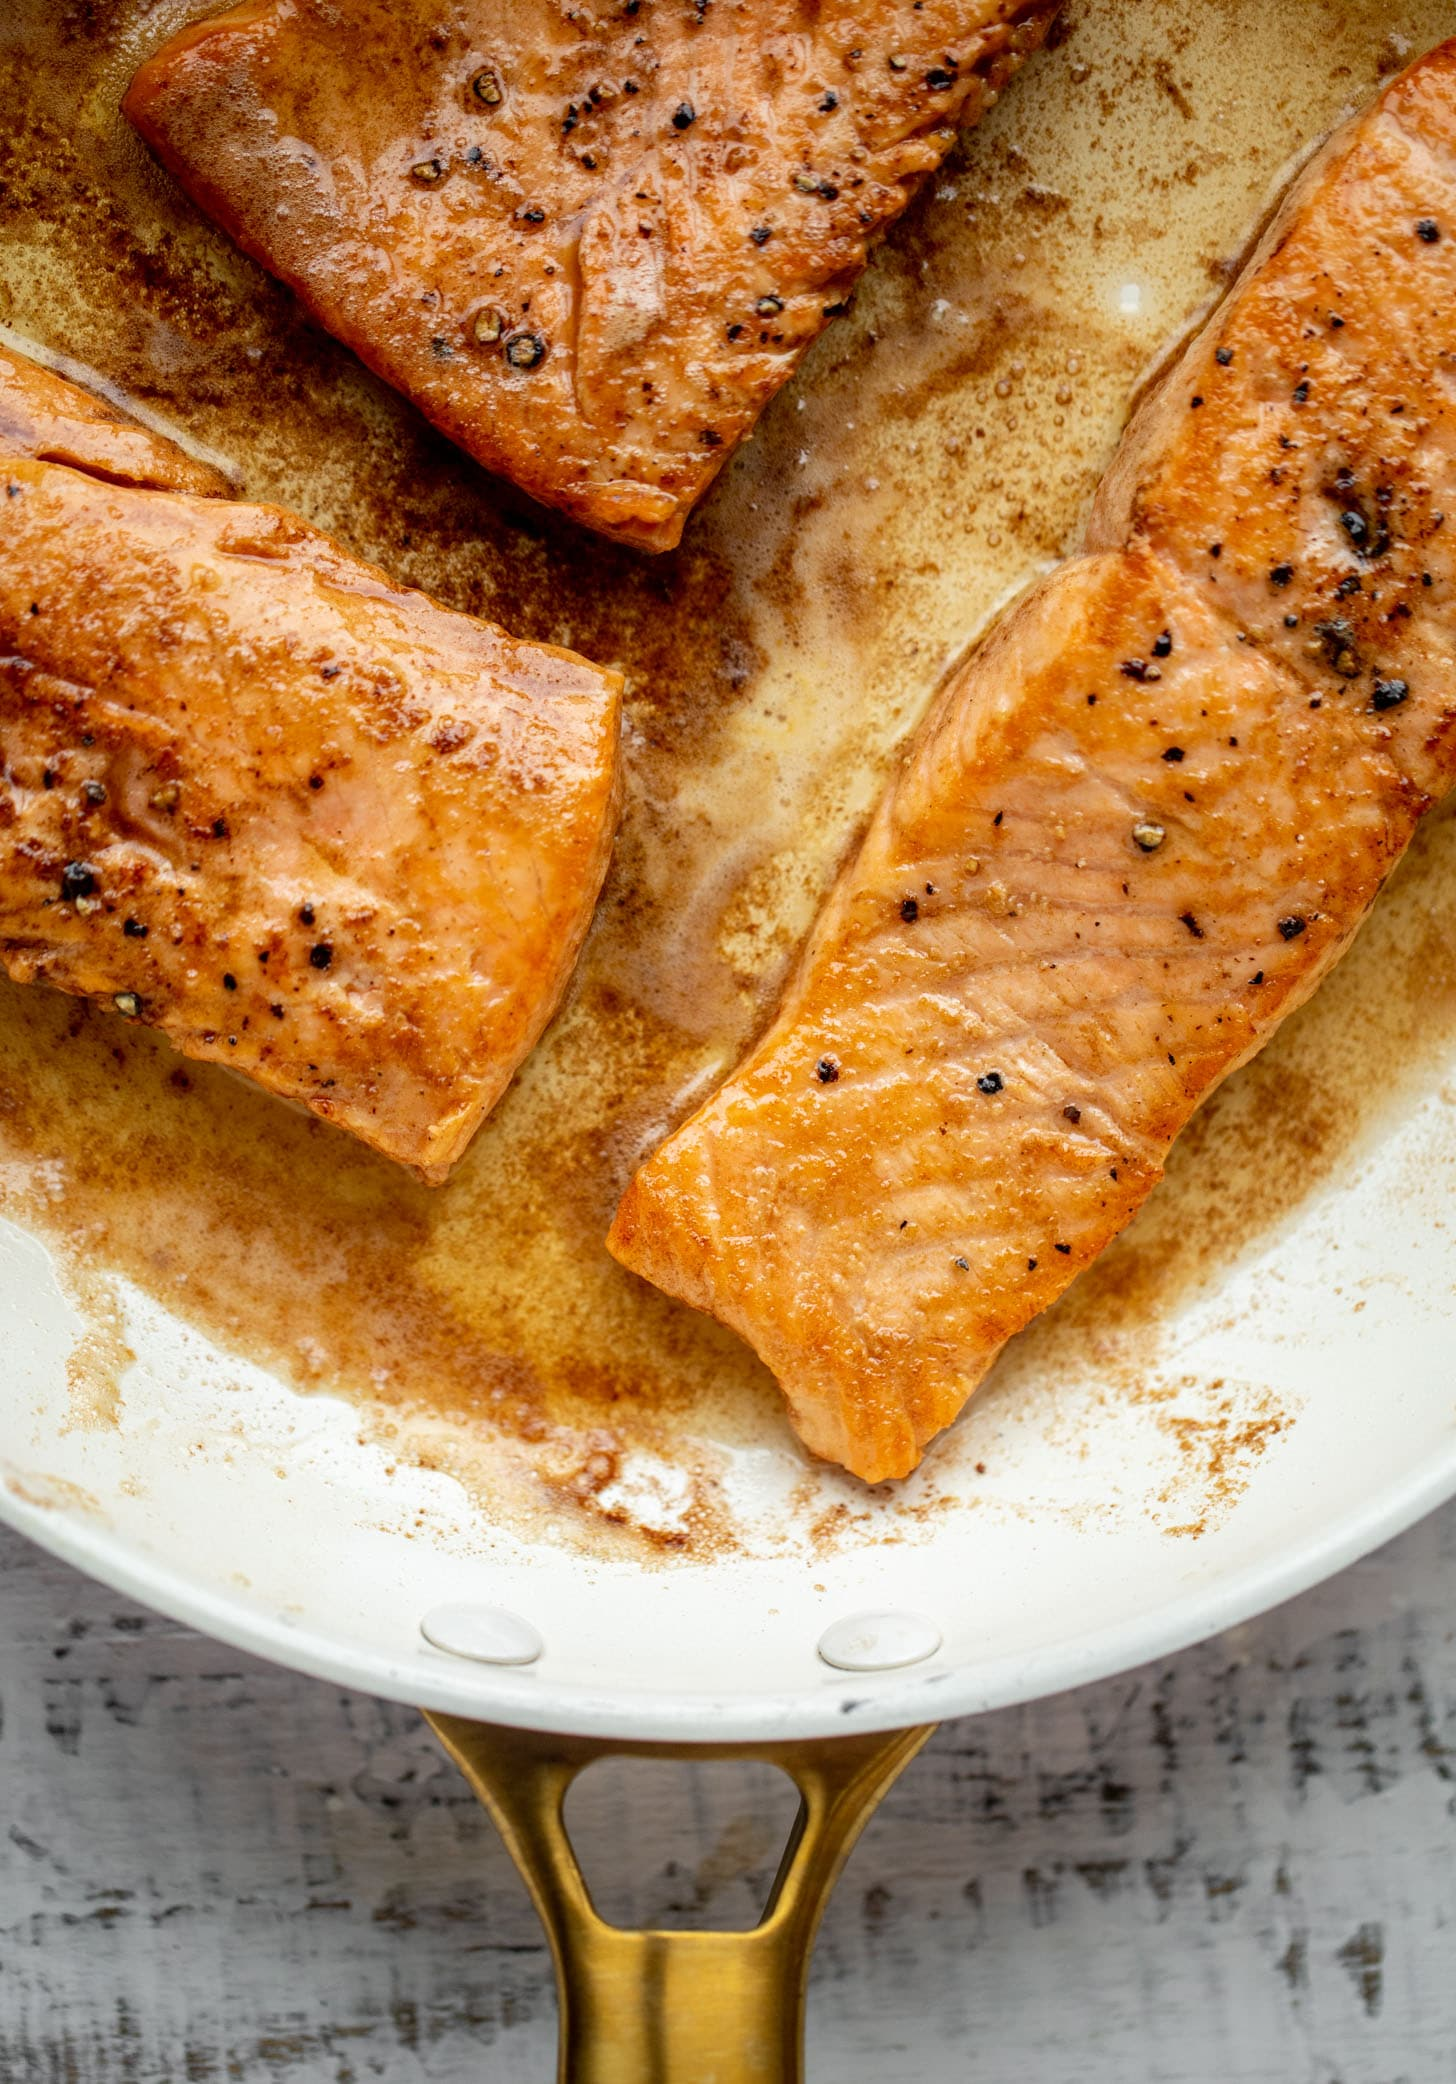 salmon cooked in brown butter